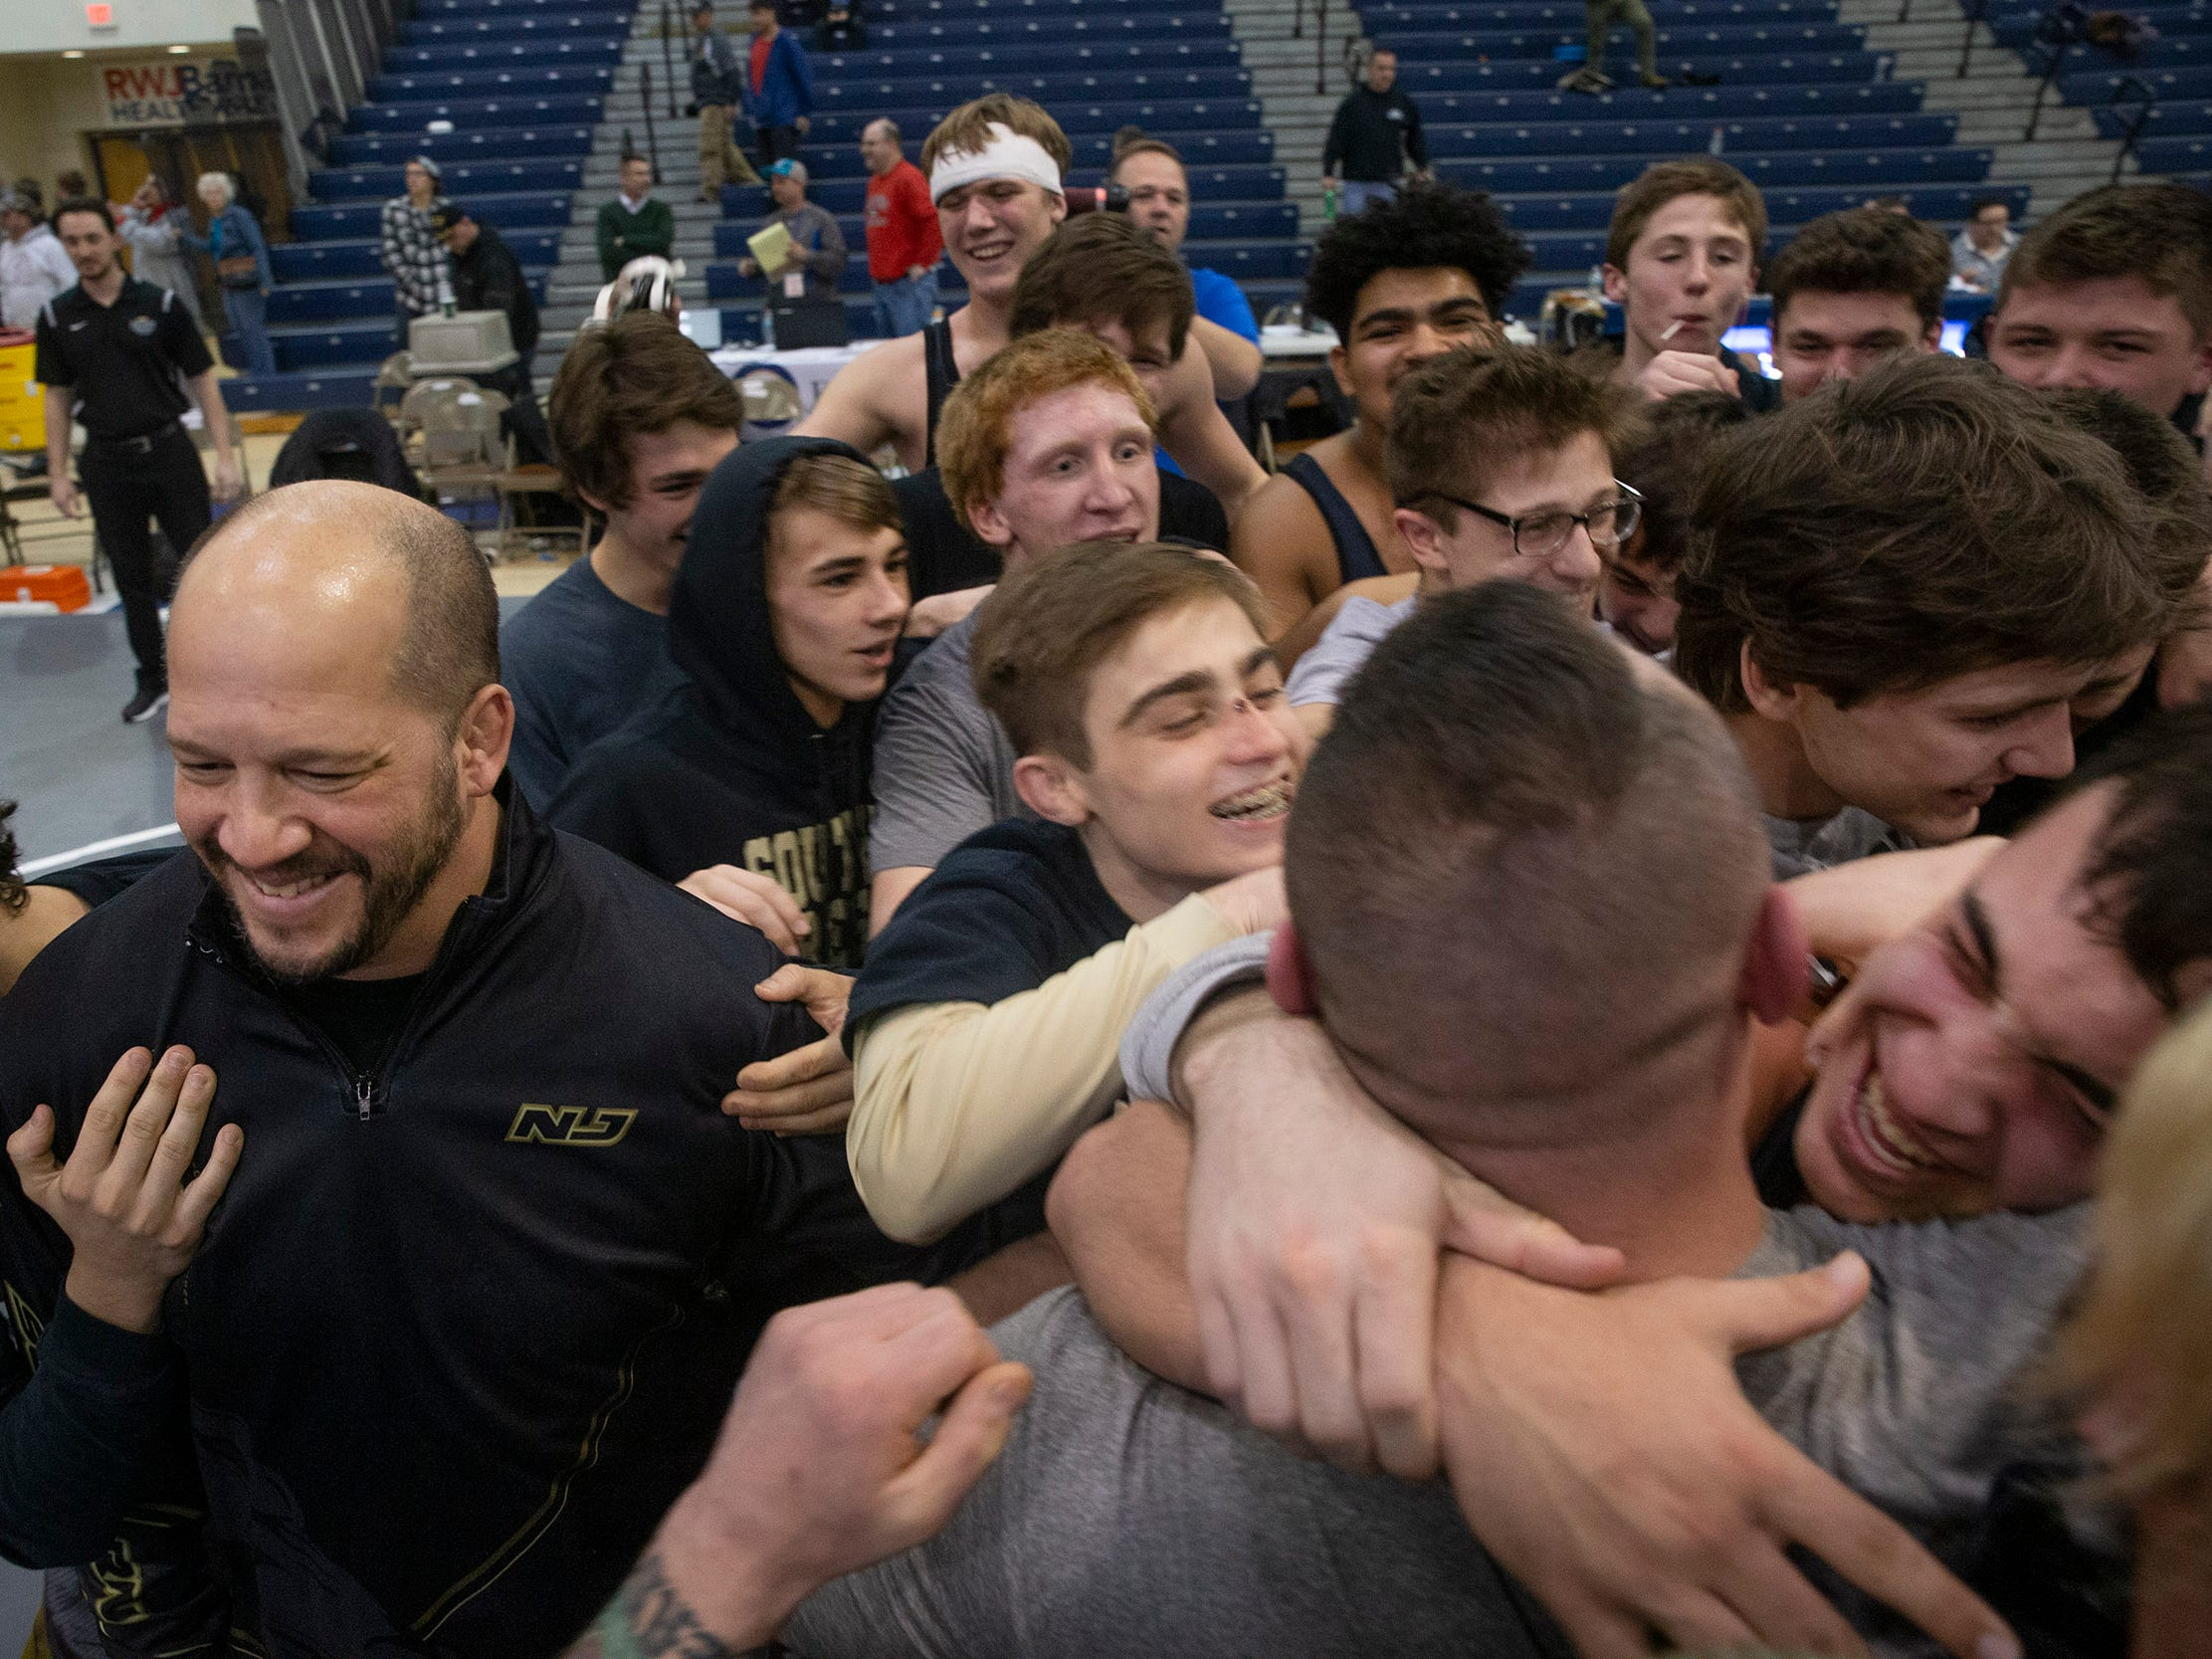 Southern Regional defeats  Hunterdon Central 34-27 in NJSIAA Team Wrestling Group V Final in Toms River NJ on February 10 , 2019.